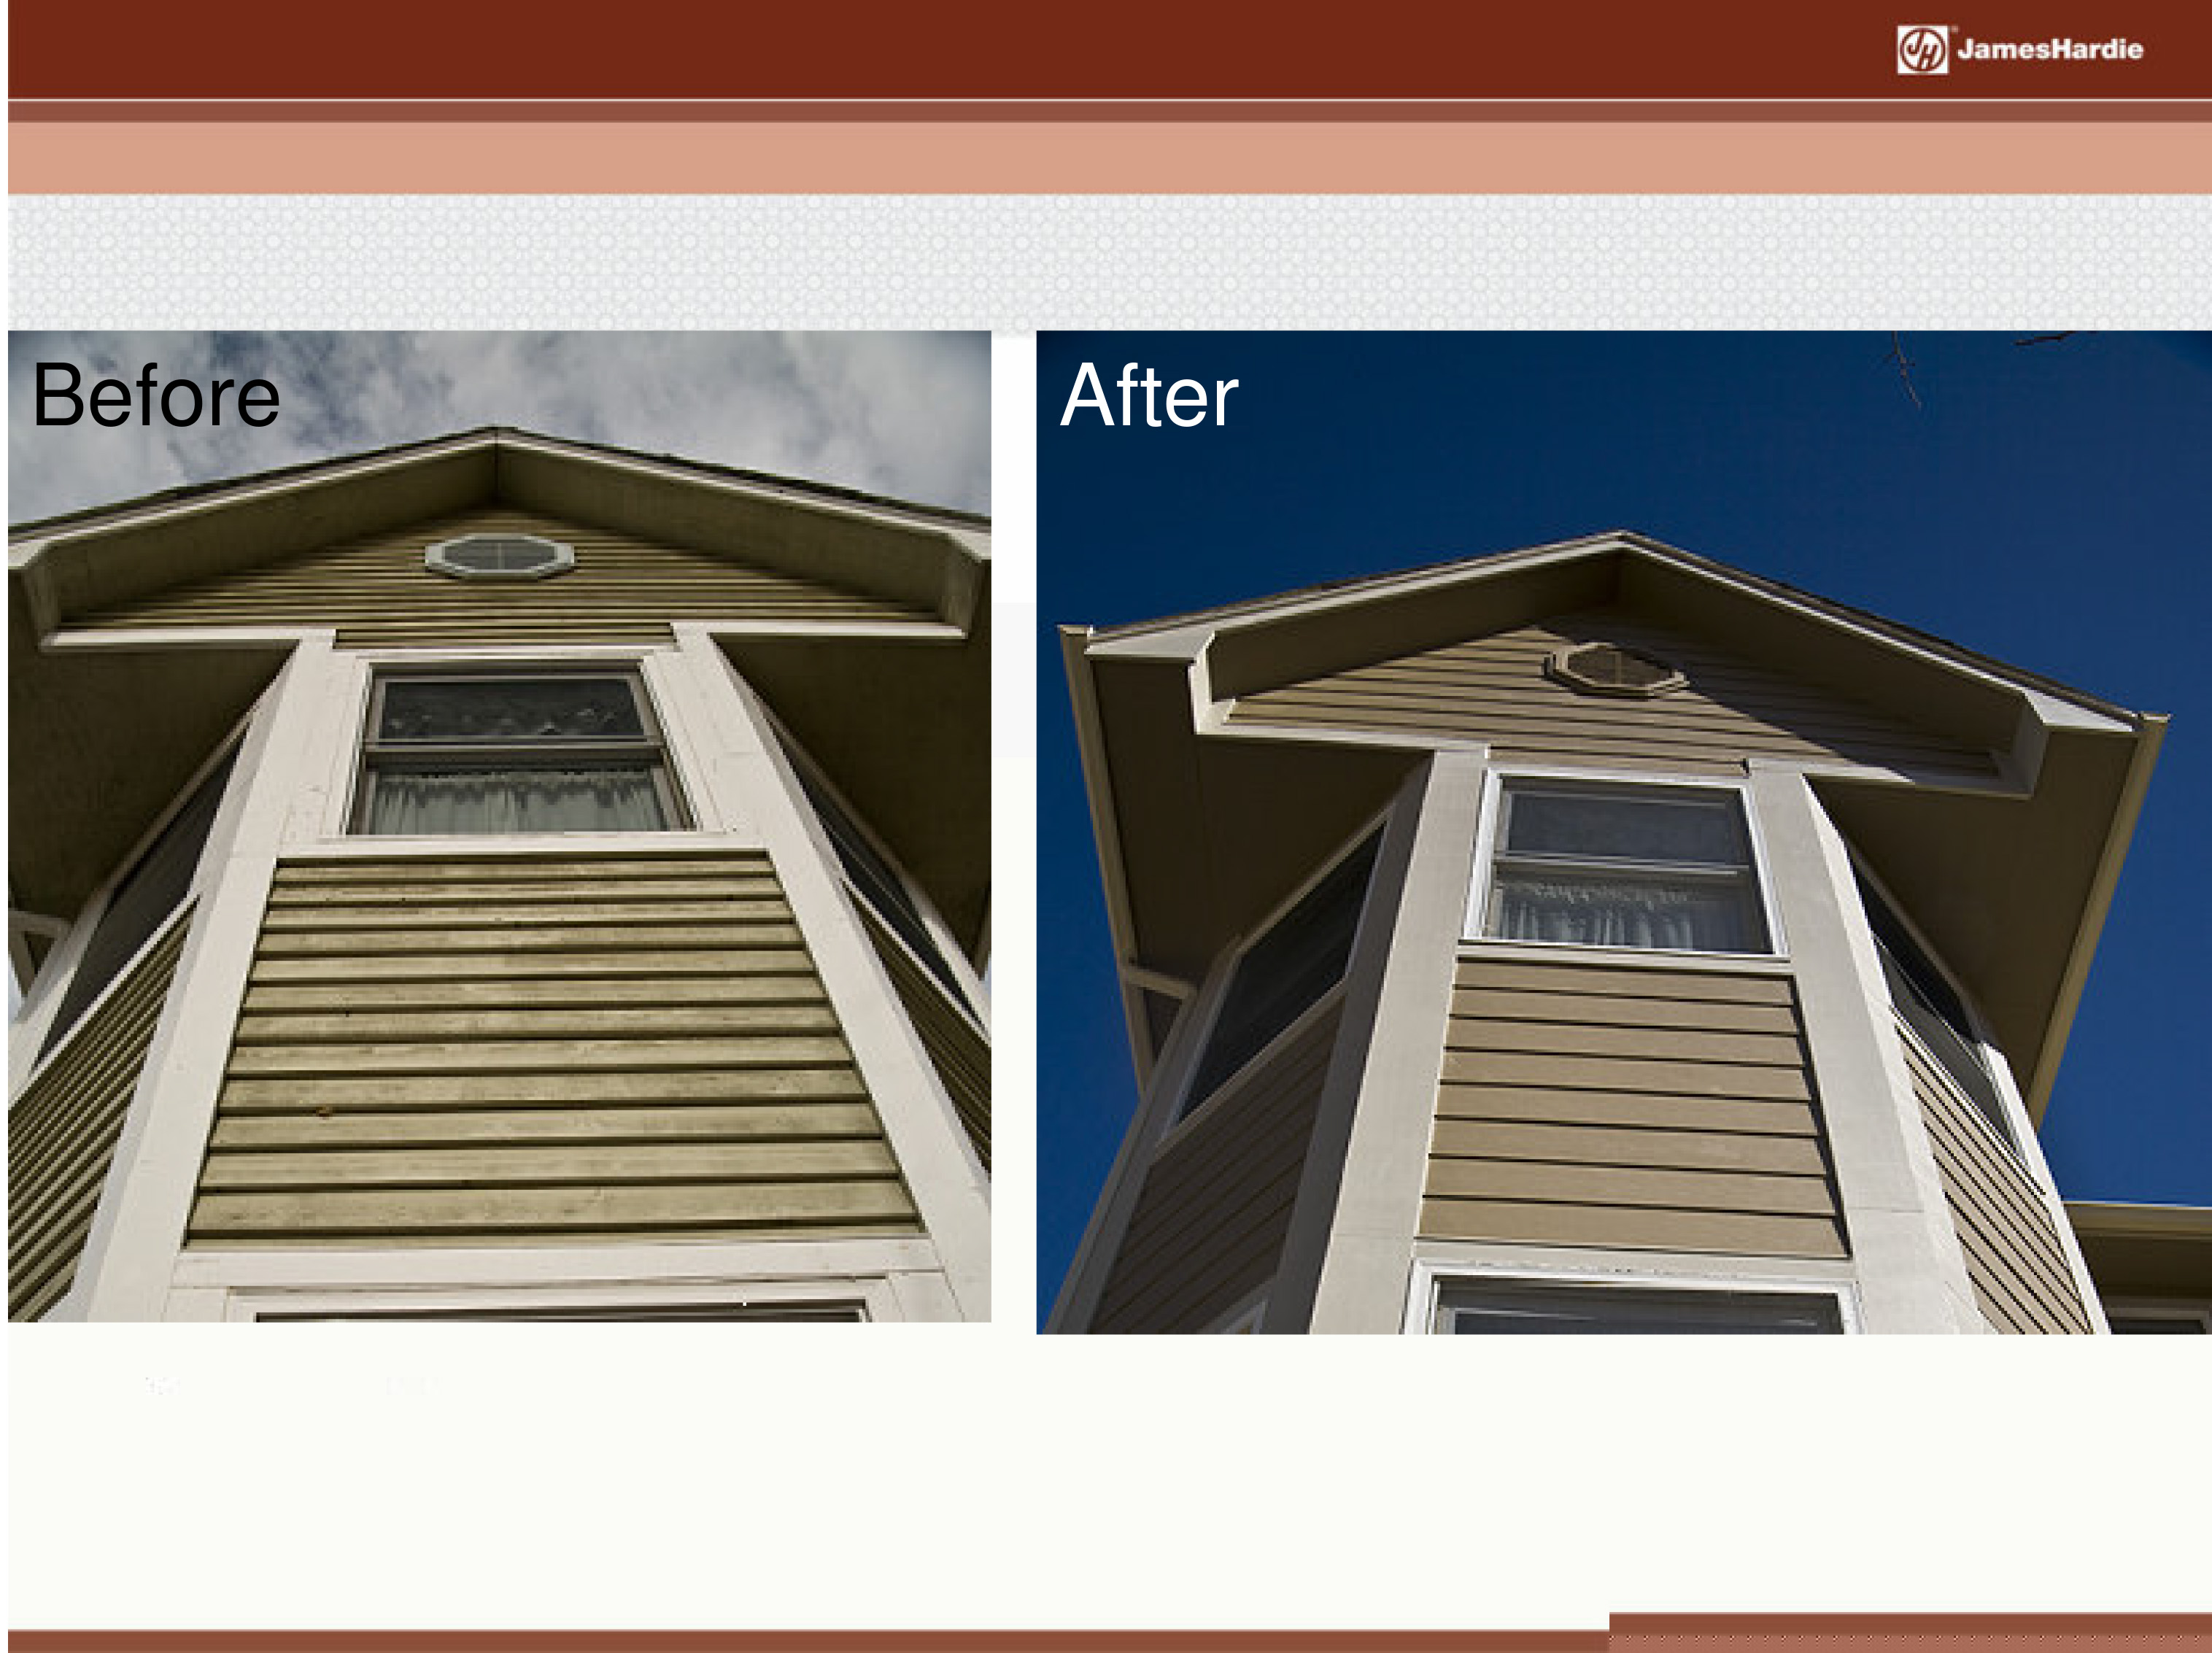 Before and After James Hardie Siding 4